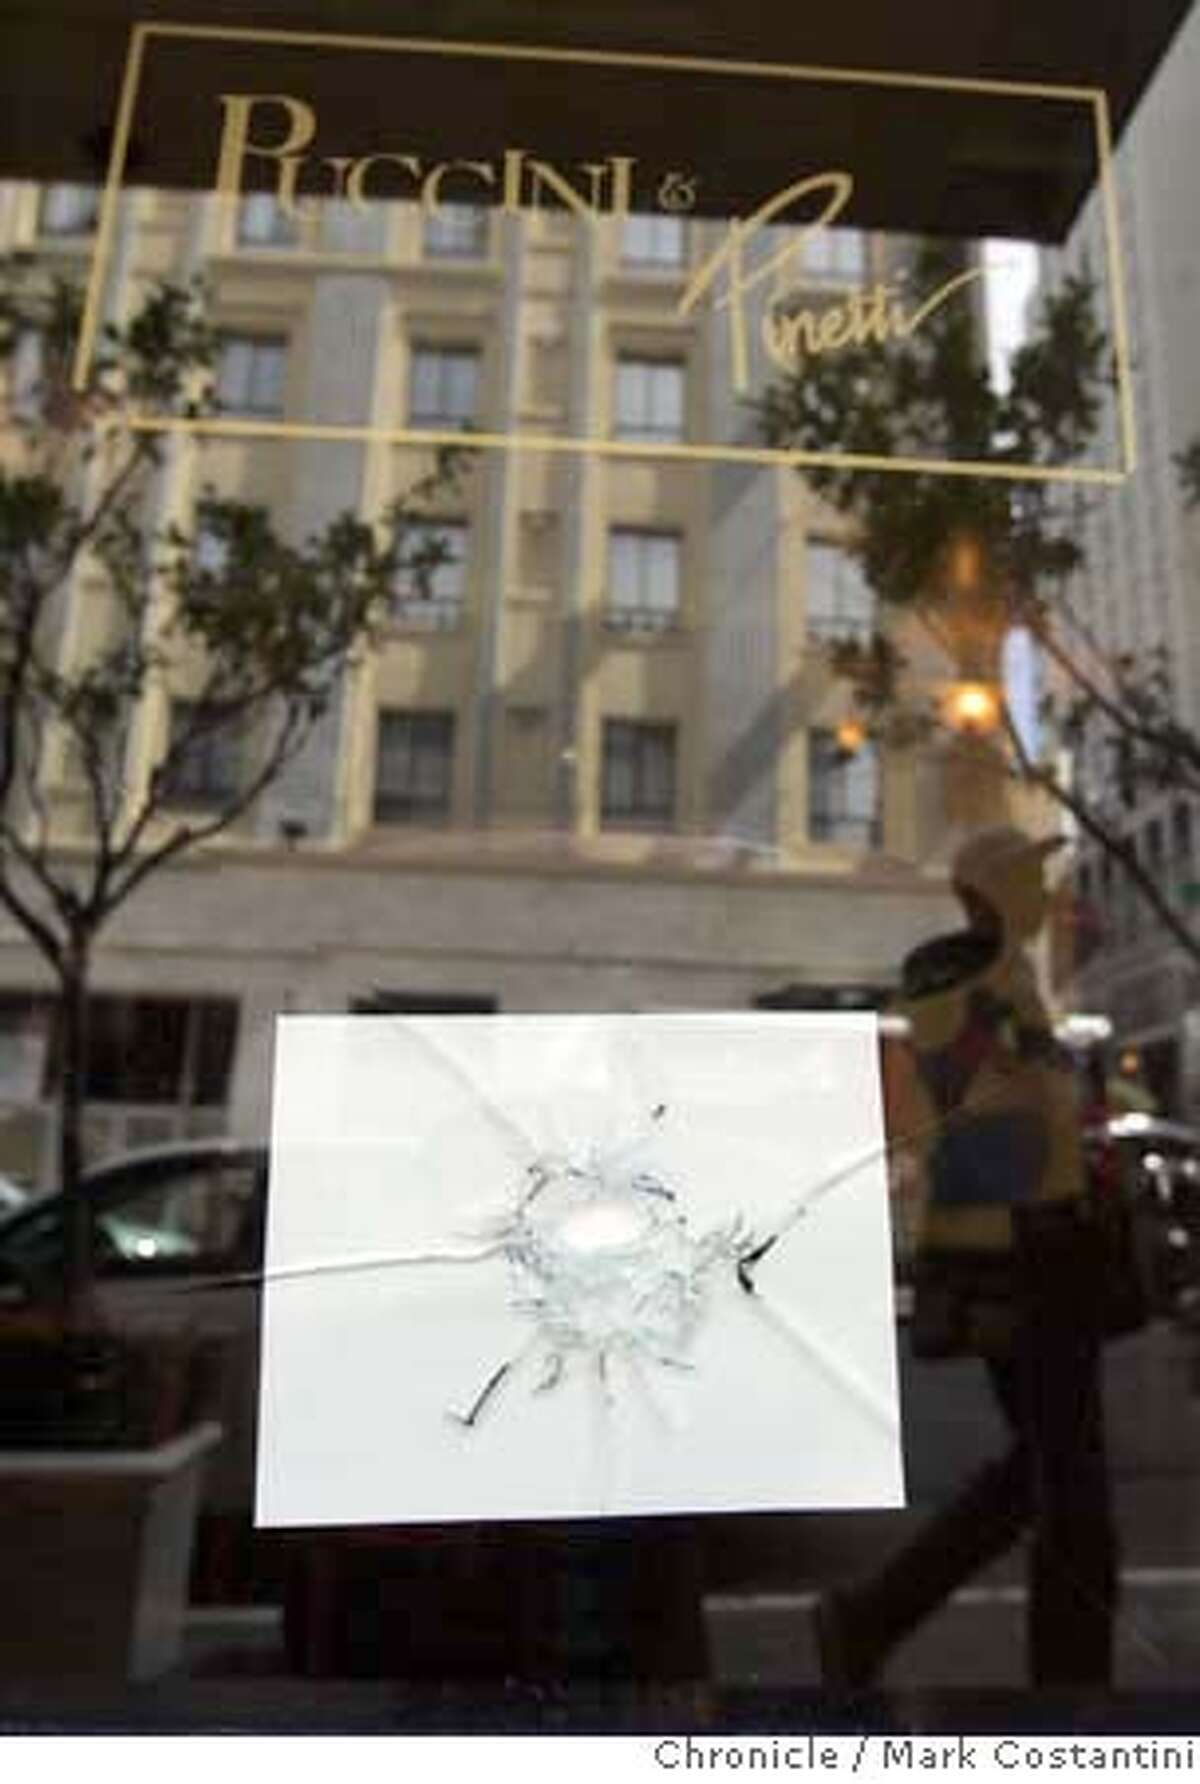 Bullet hole in window of Pucini and Pincetti Restaurant. The bullets narrowly missed patrons. For MR column. Photo: Mark Costantini / S.F. Chronicle